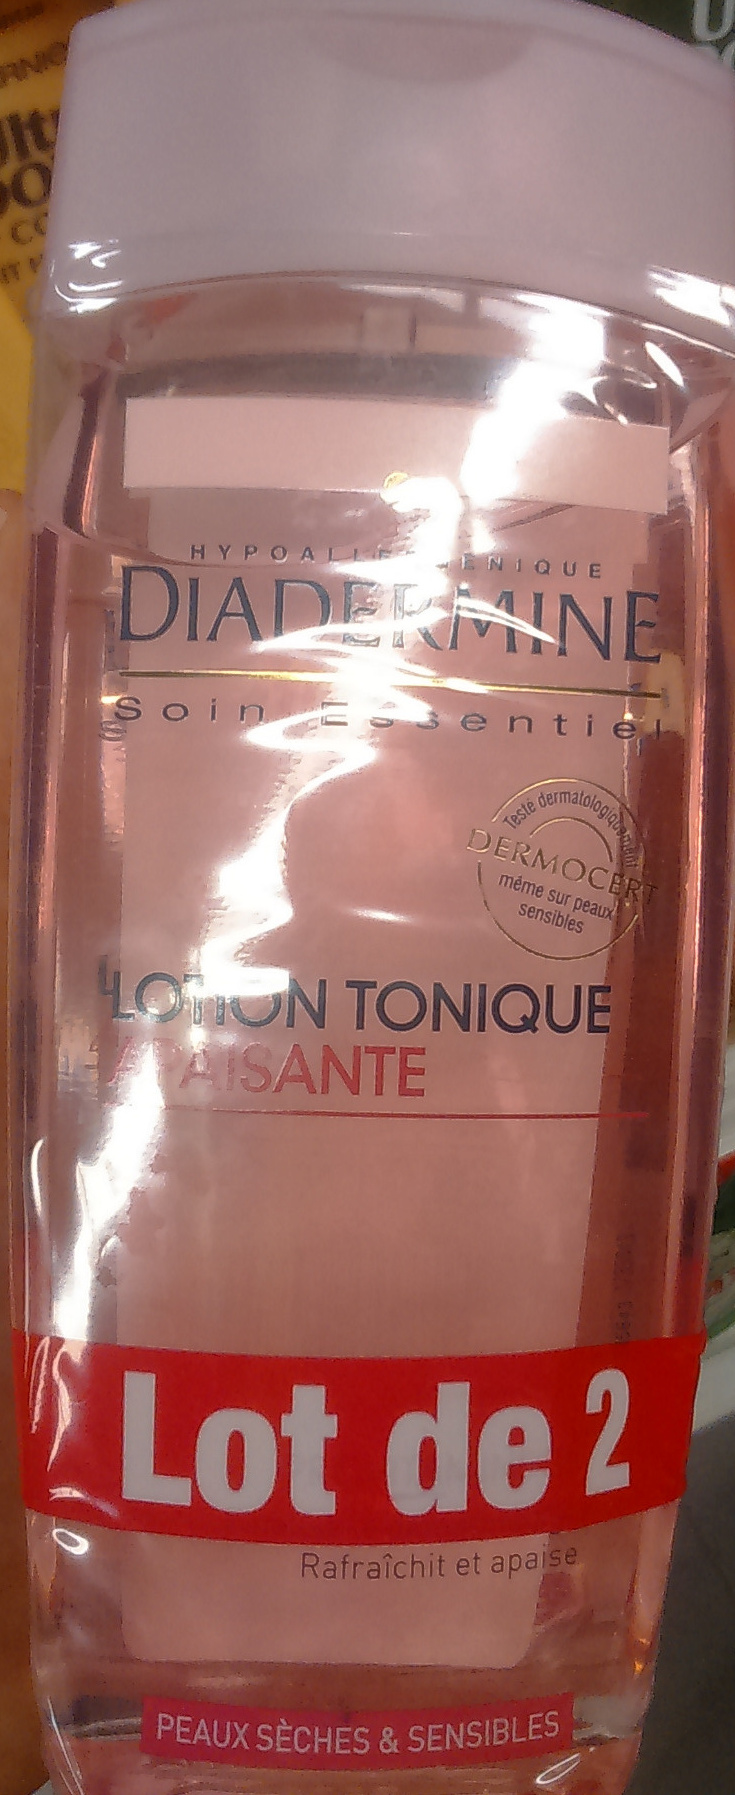 Lotion tonique apaisante - Product